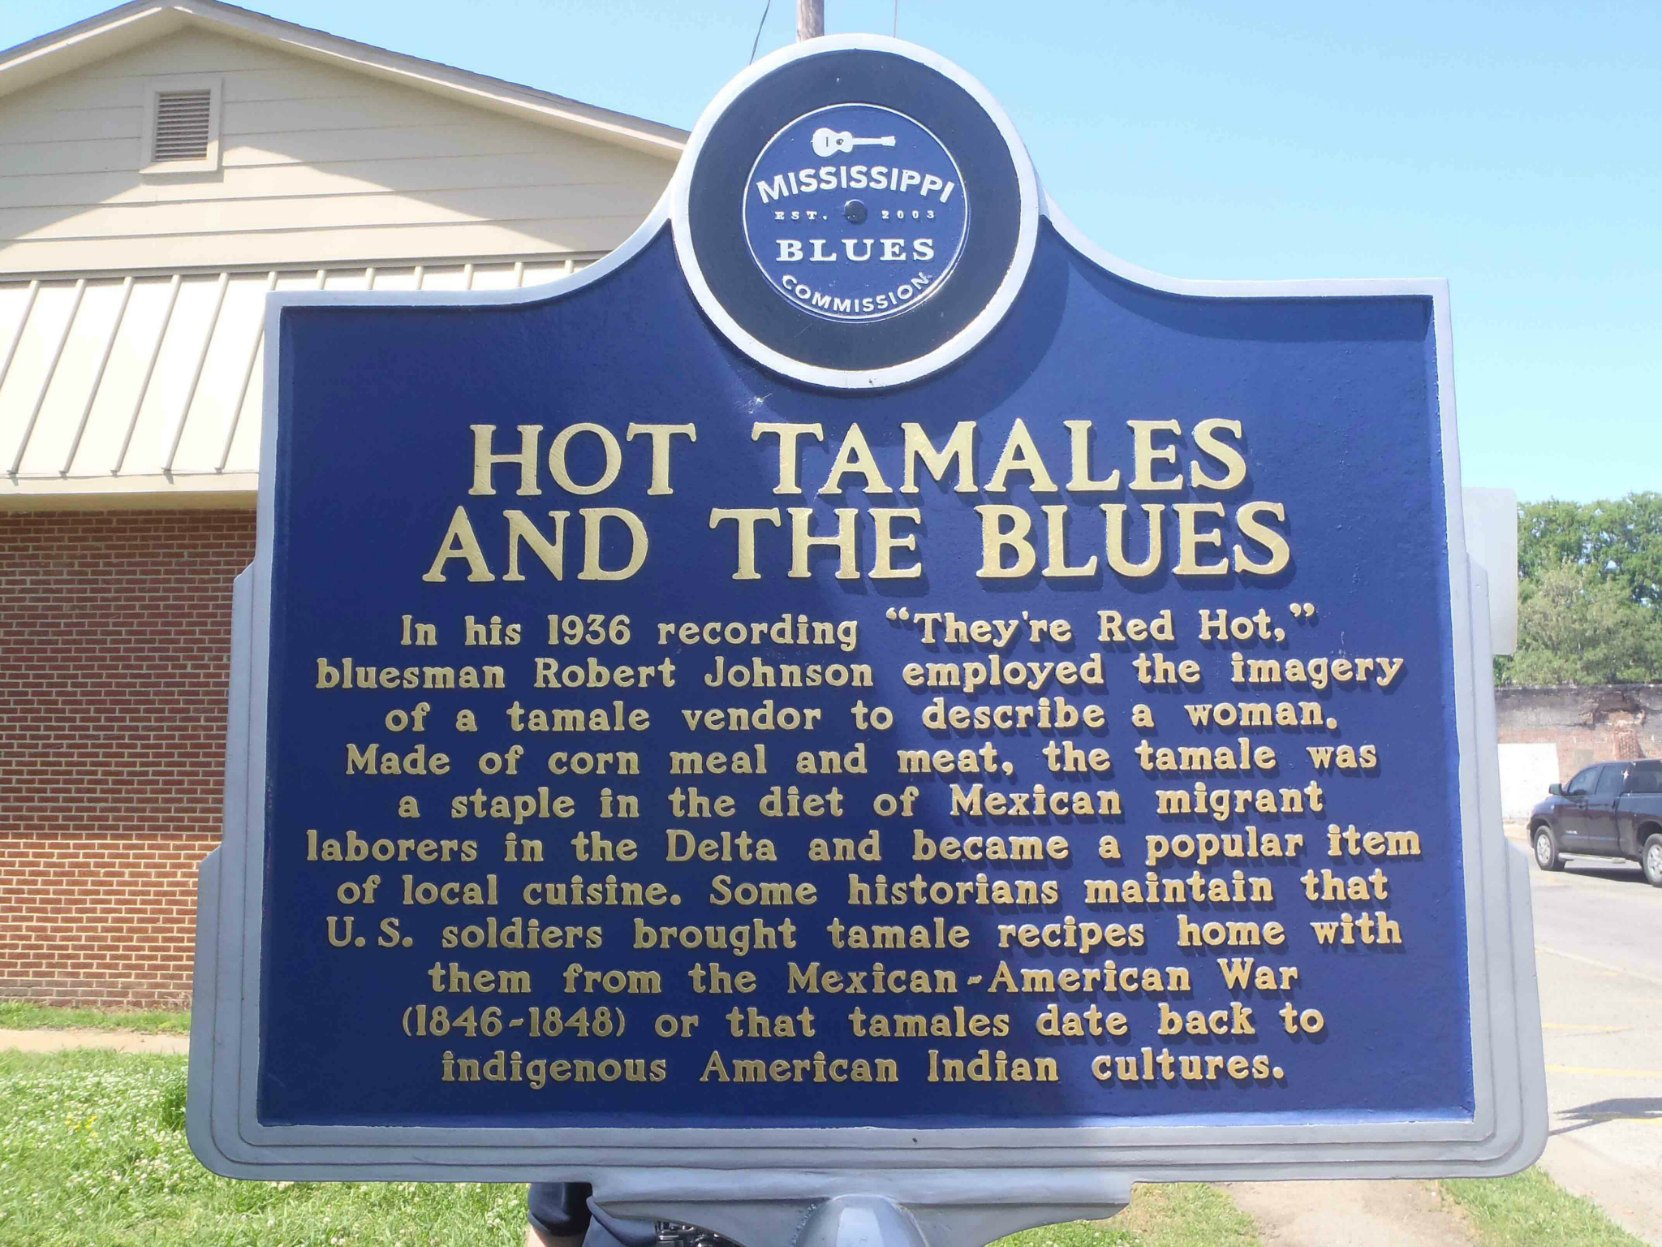 Mississippi Blues Trail marker commemorating Hot Tamales And The Blues, Rosedale, Mississippi